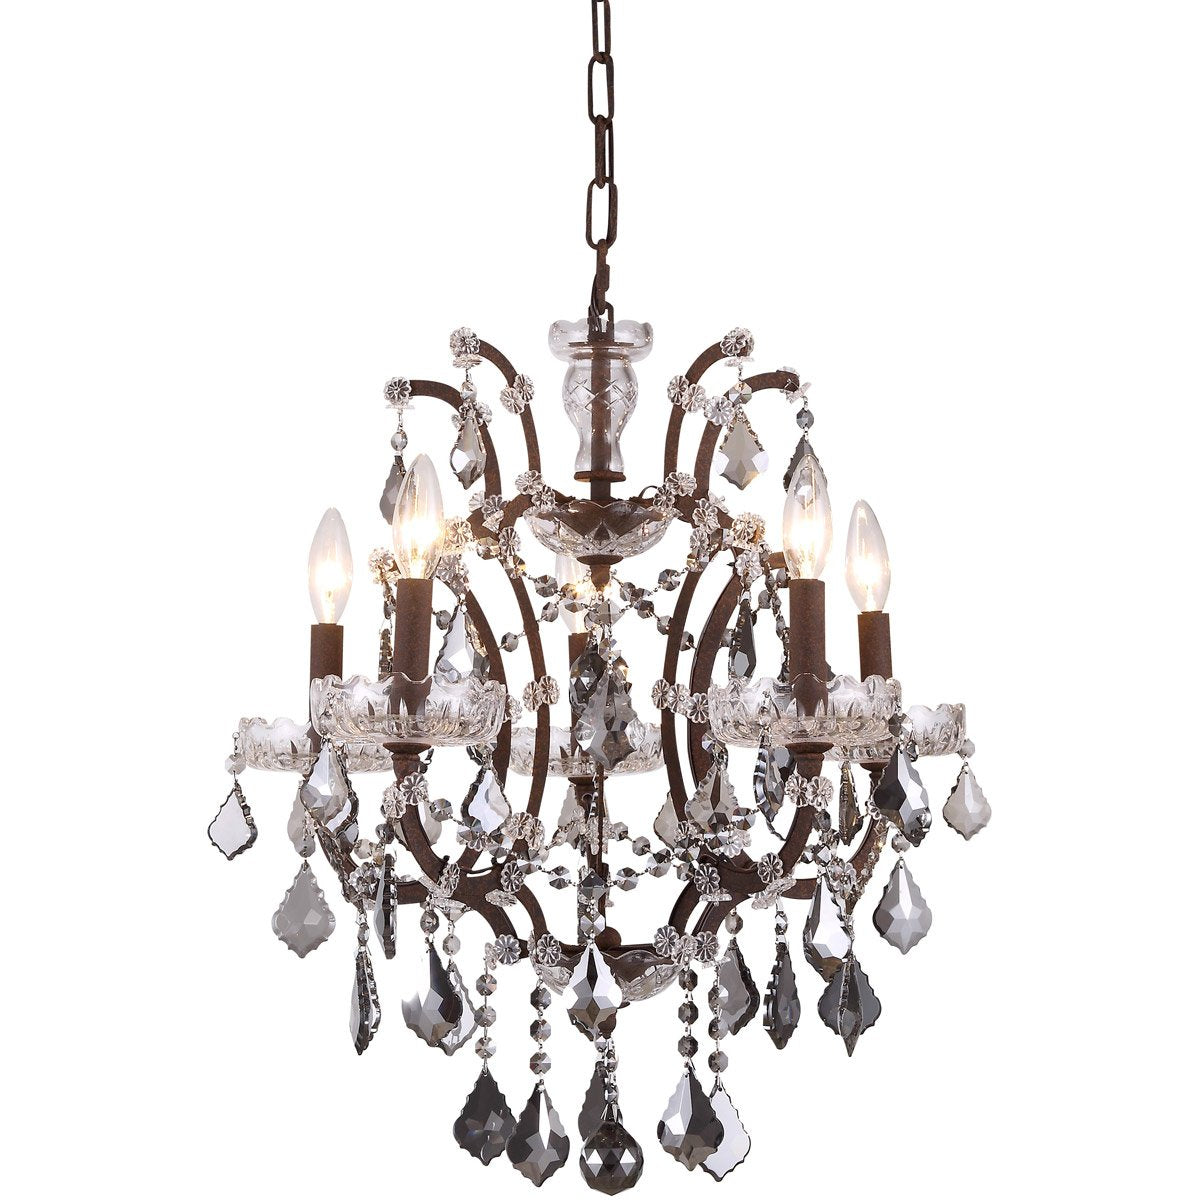 Elena 18 Crystal Mini Chandelier With 5 Lights - Rustic Intent Finish And Grey Crystal Chandelier